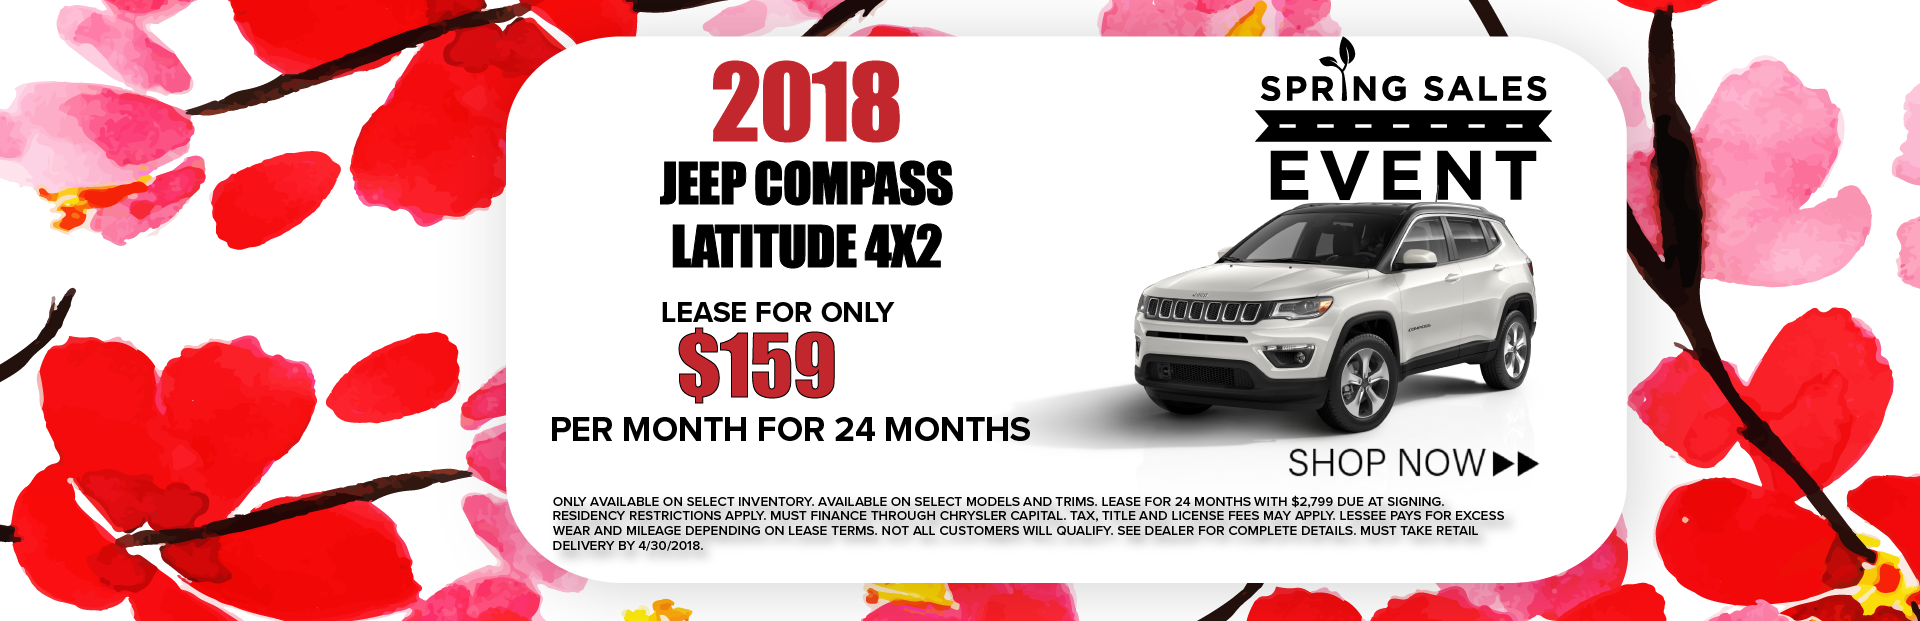 2018 Jeep Compass Latitude 4X2 Spring Sales Event Banner